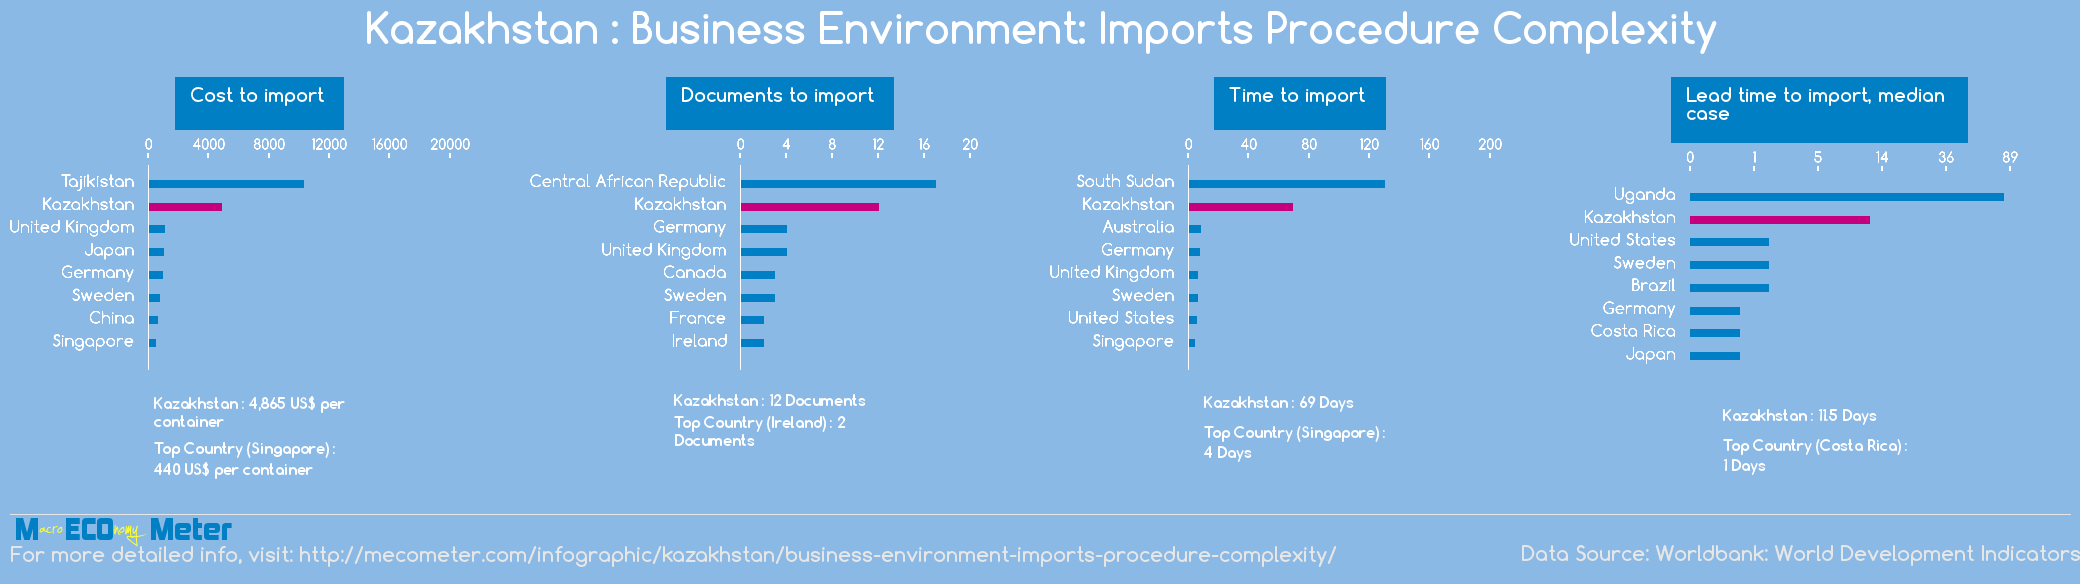 Kazakhstan : Business Environment: Imports Procedure Complexity